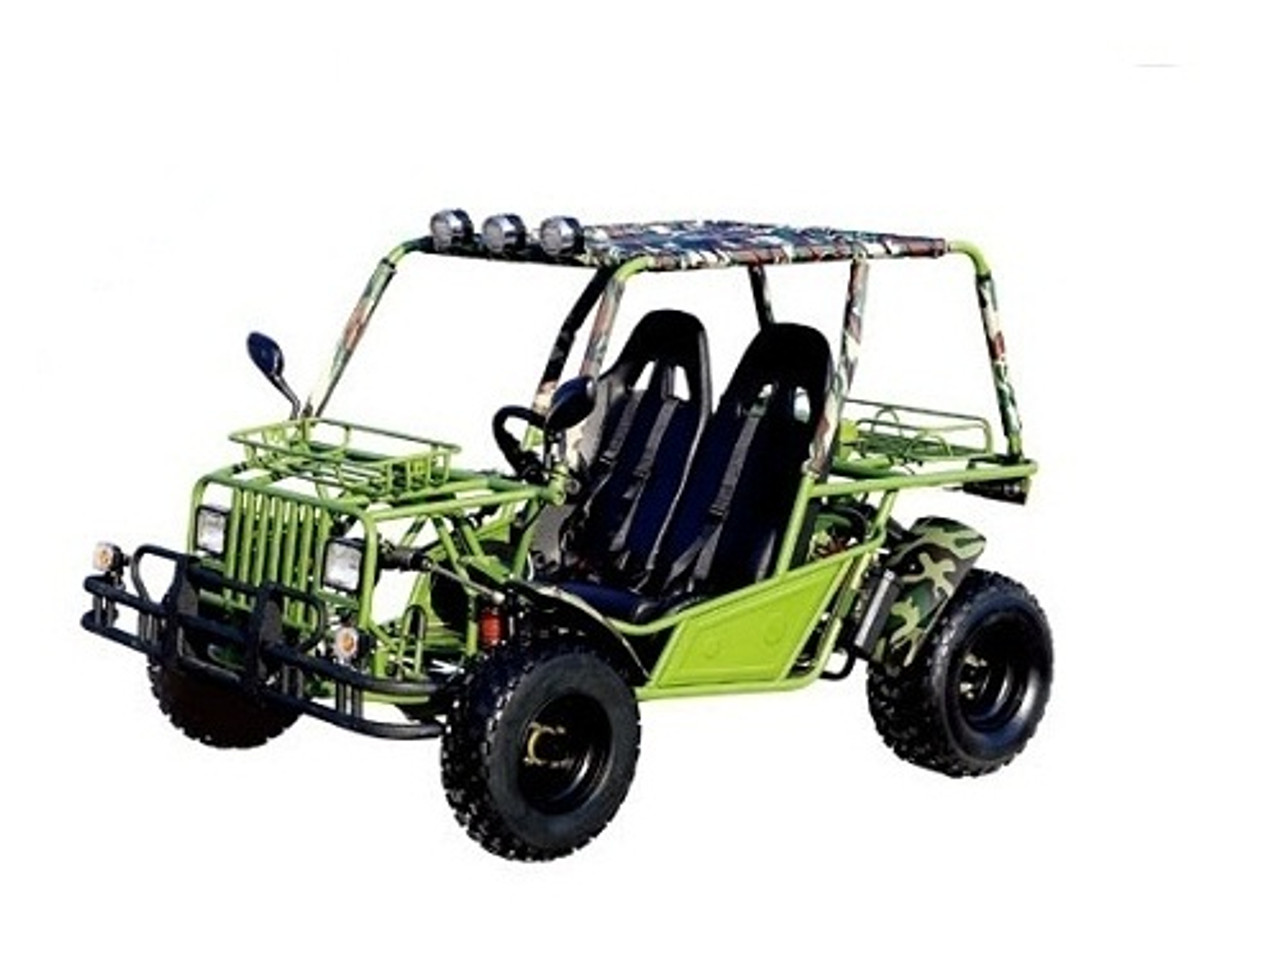 Vitacci HUMMER 200cc Go Kart, 4 Stroke / Single Cylinder/ Fully Auto With Reverse